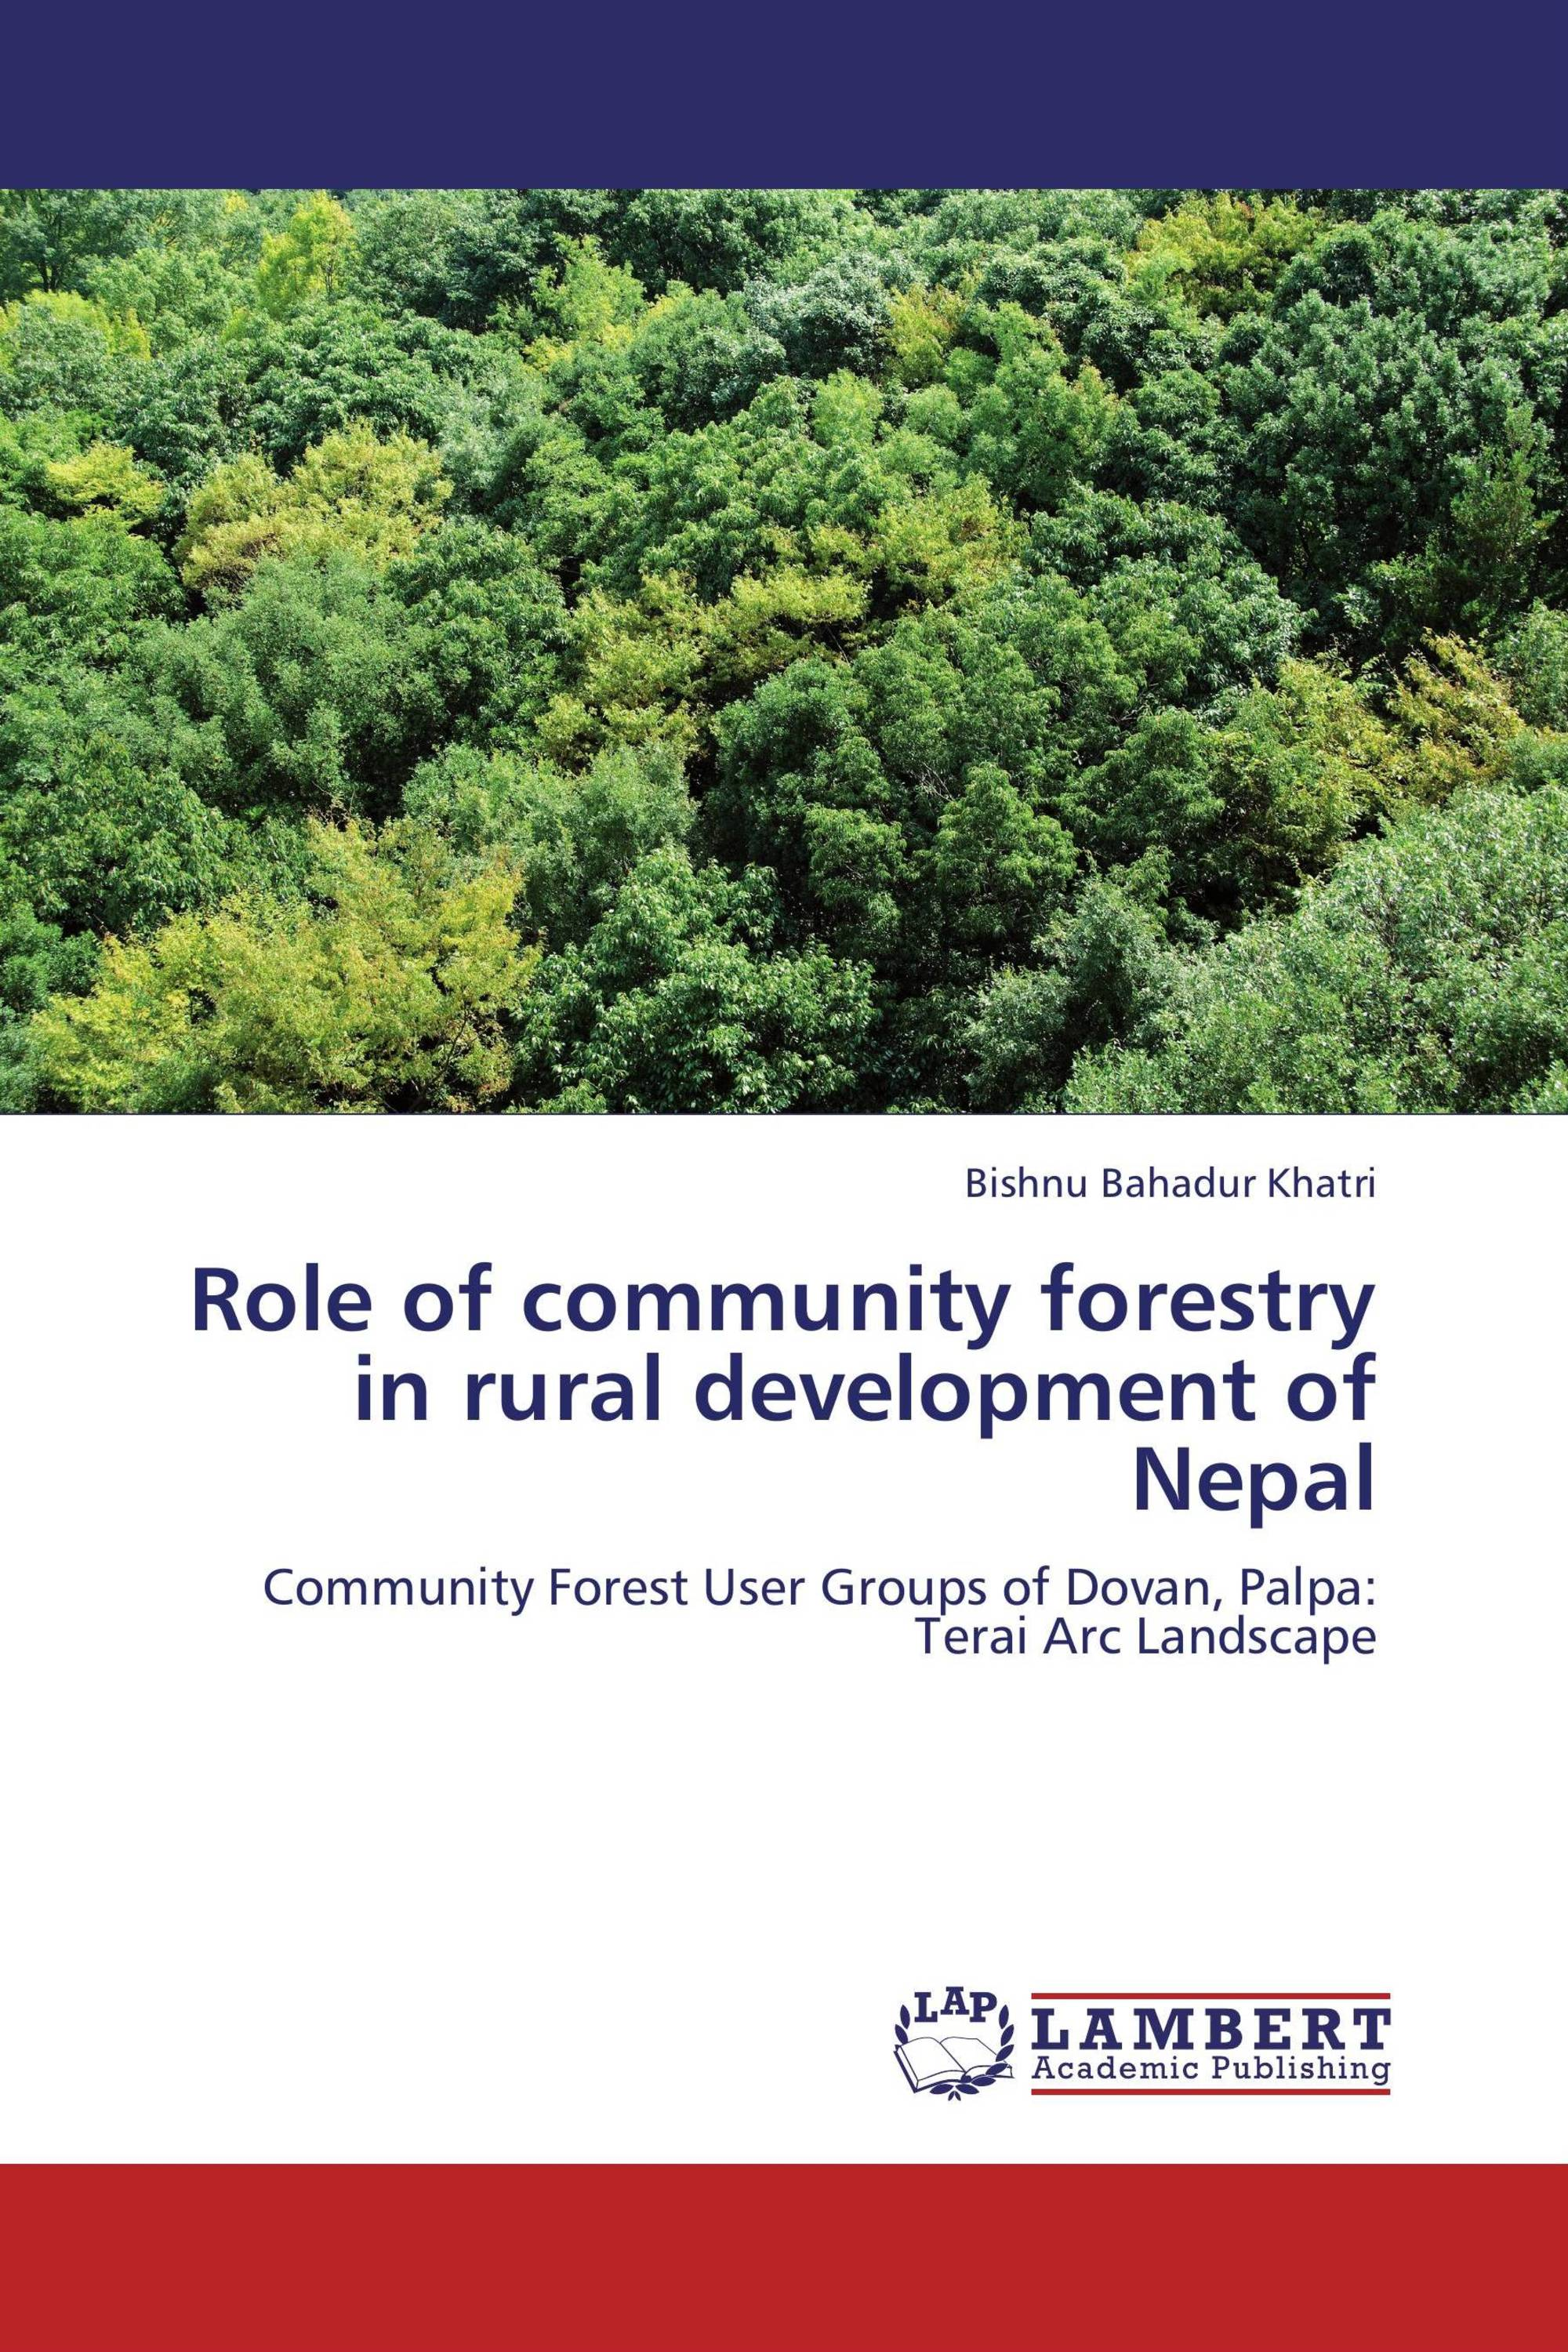 Role of community forestry in rural development of Nepal